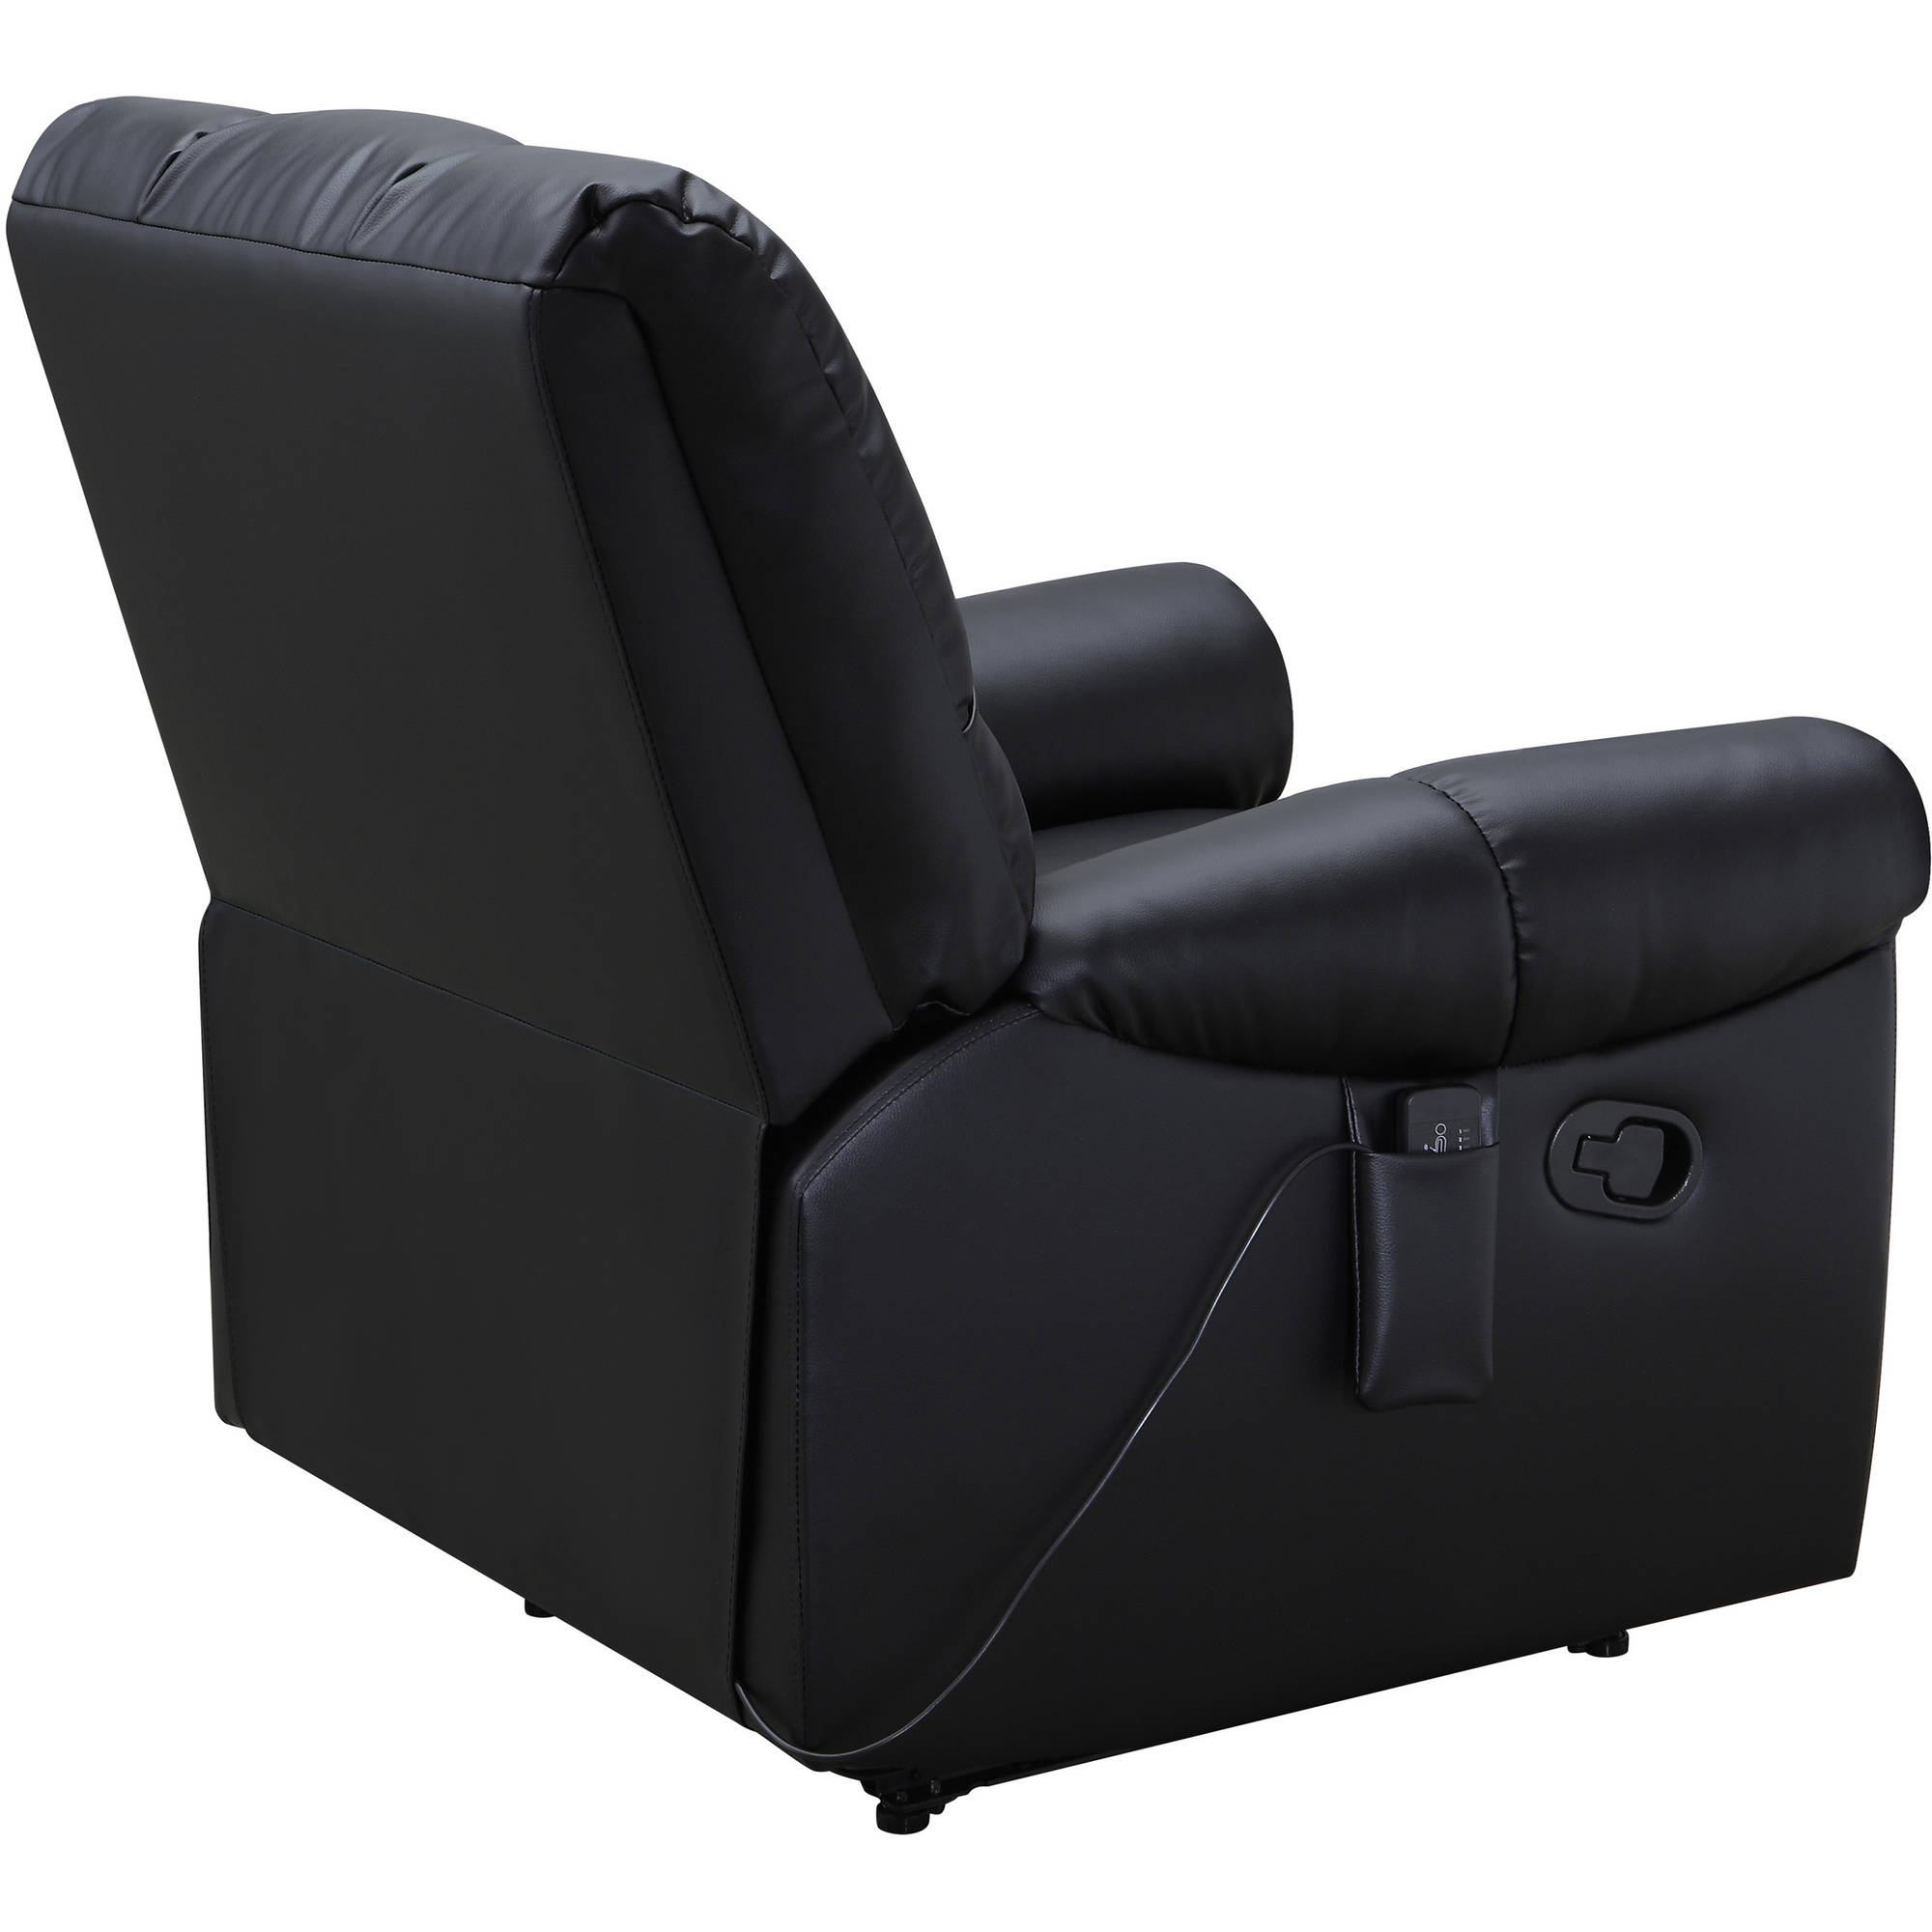 Serta Massage Recliner Black Walmart